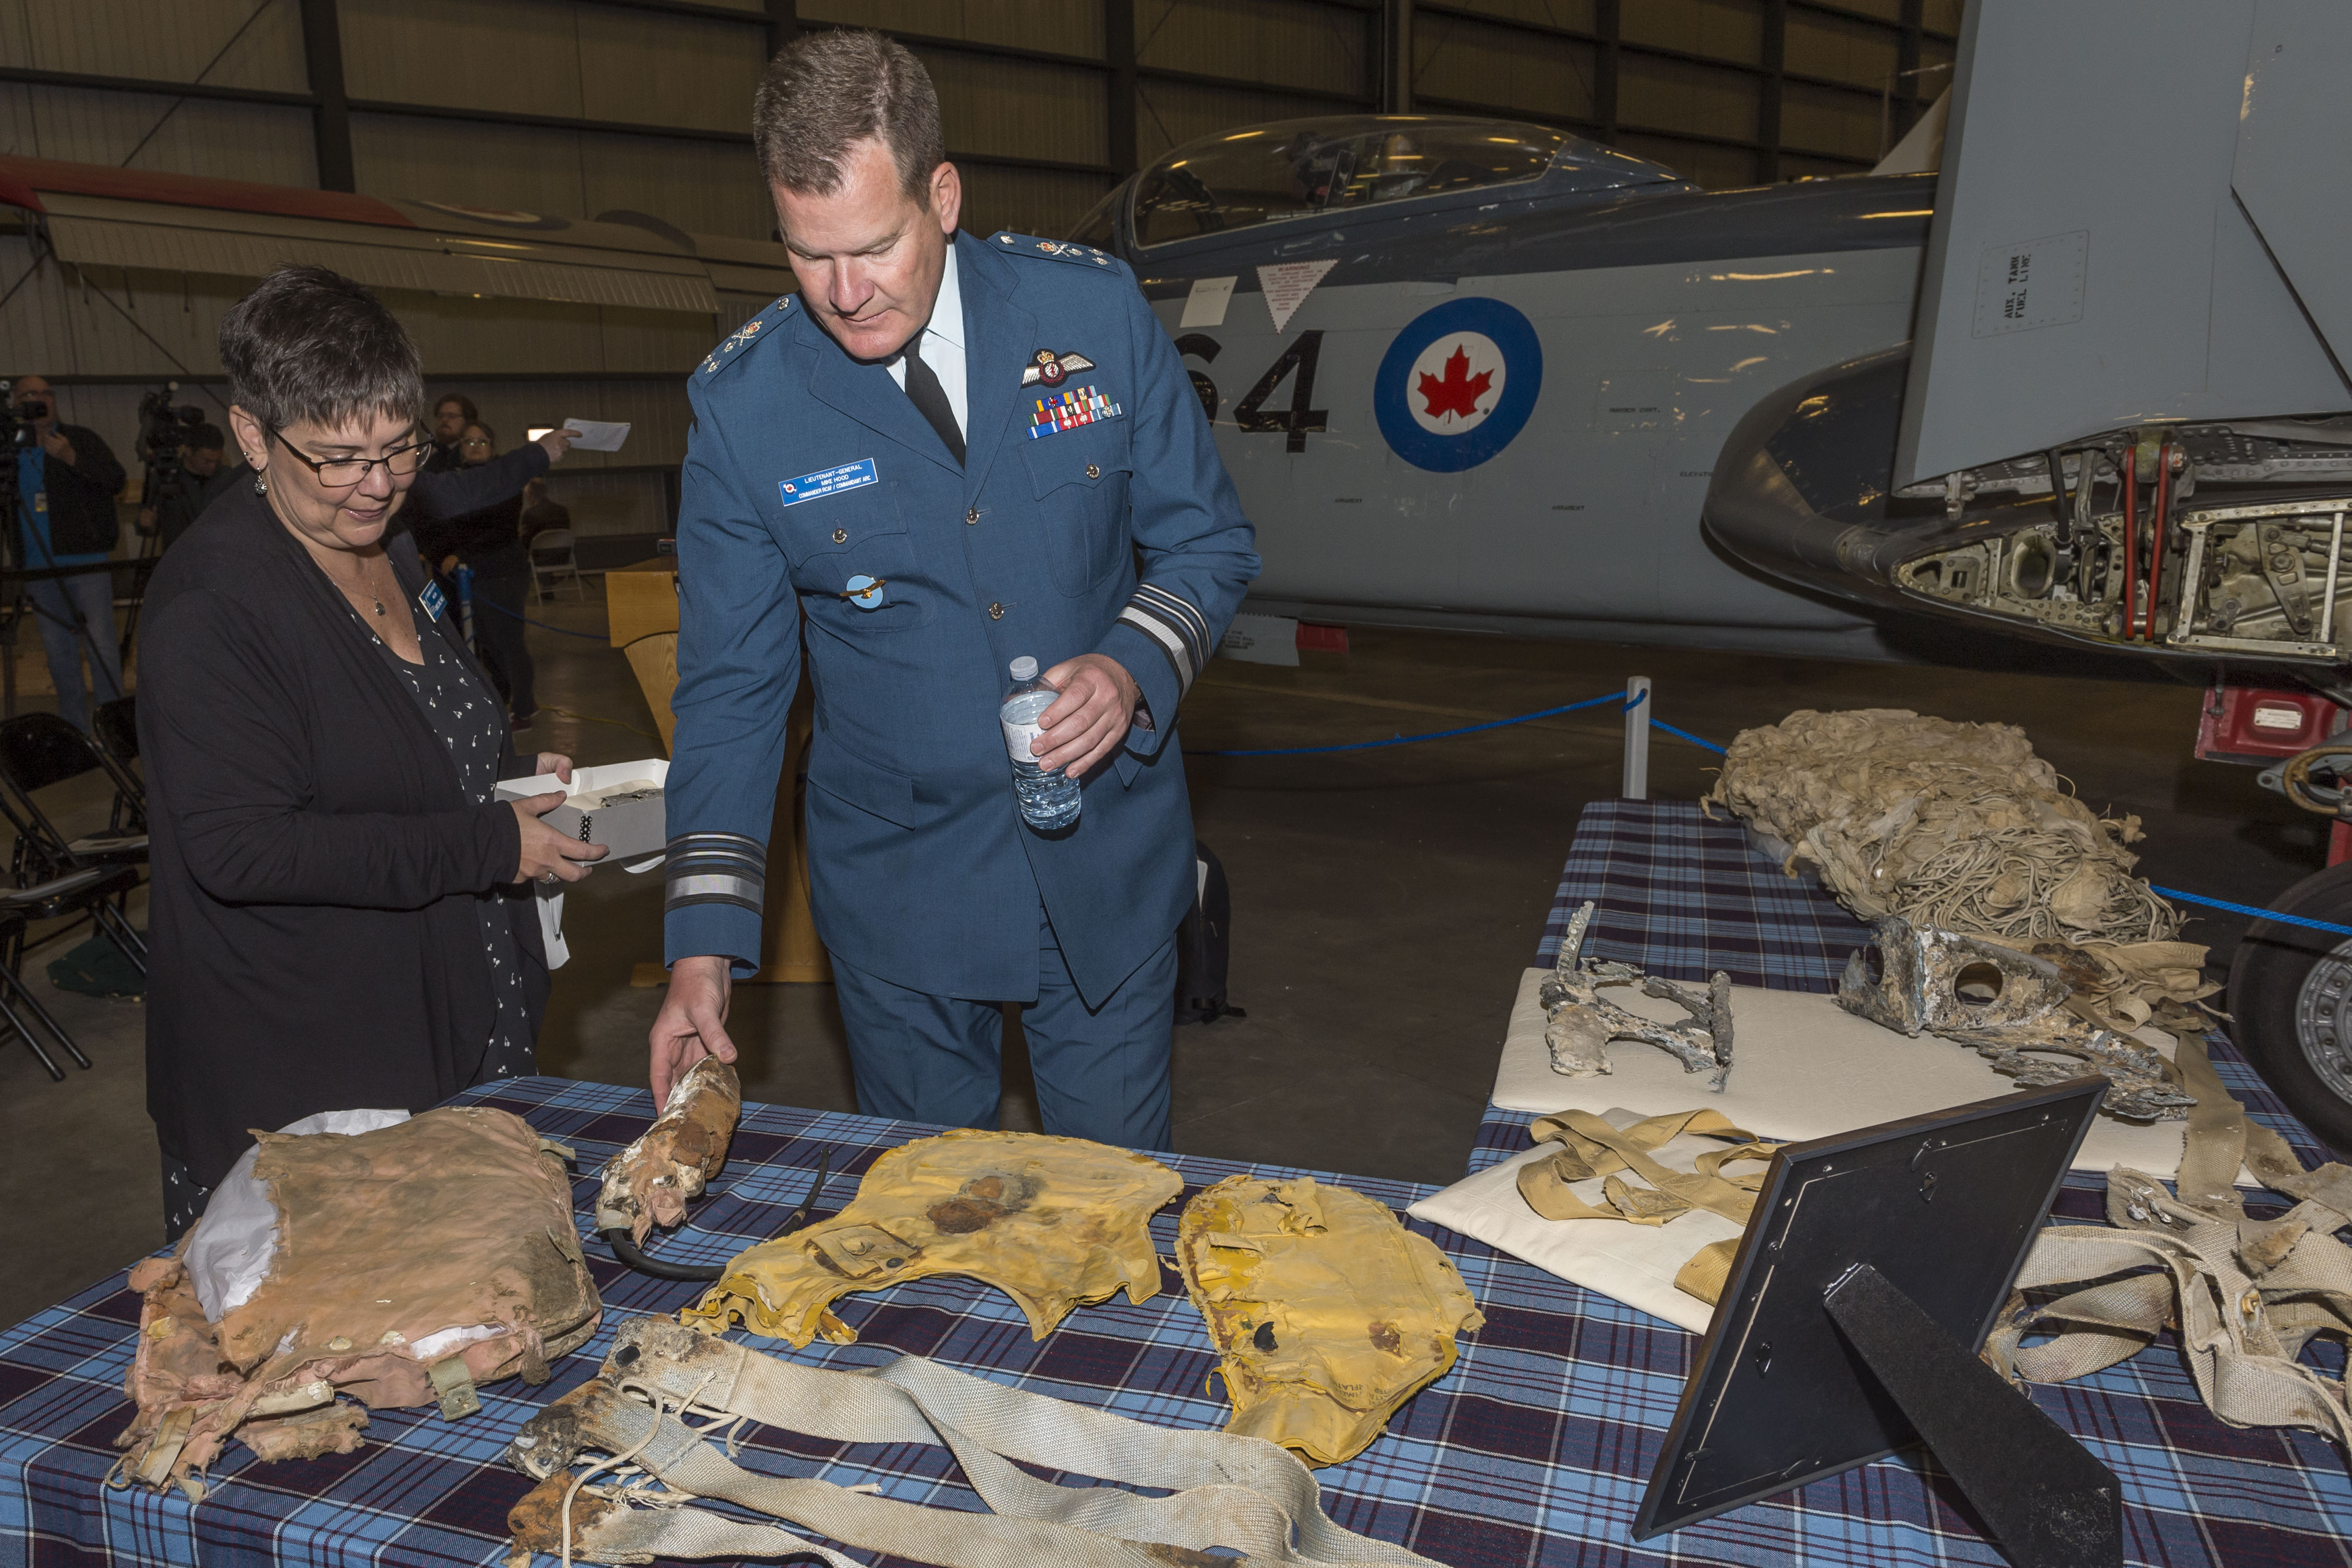 Ms. Christine Hines, curator of the Shearwater Aviation Museum, and Lieutenant-General Mike Hood, commander of the RCAF, examine artifacts relating to Lieutenant Barry Troy in the Annex of the Canada Aviation and Space Museum. In the background is a Banshee fighter, similar to the one Lieutenant Troy was flying when he crashed in 1958. PHOTO: Corporal Alana Morin, FA03-2018-0038-029